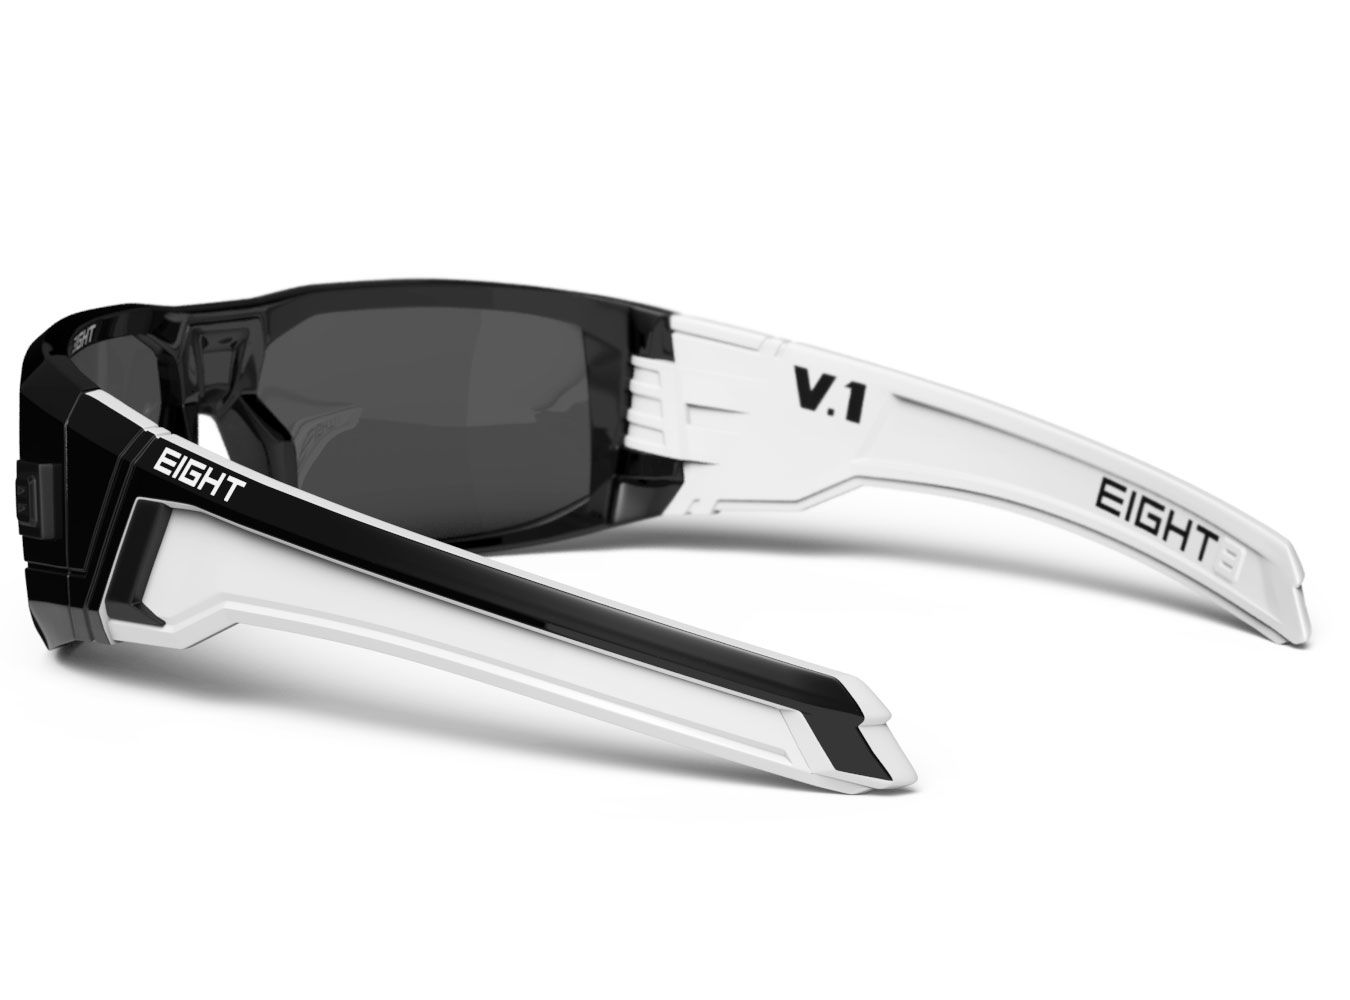 639642e086 Glossy Black White V.1 from EIGHT Eyewear WWW.IWEAR8.COM  8eyewear   sunglasses  shades  cool  mensfashion  fashion  style  summer  eight   sports  design